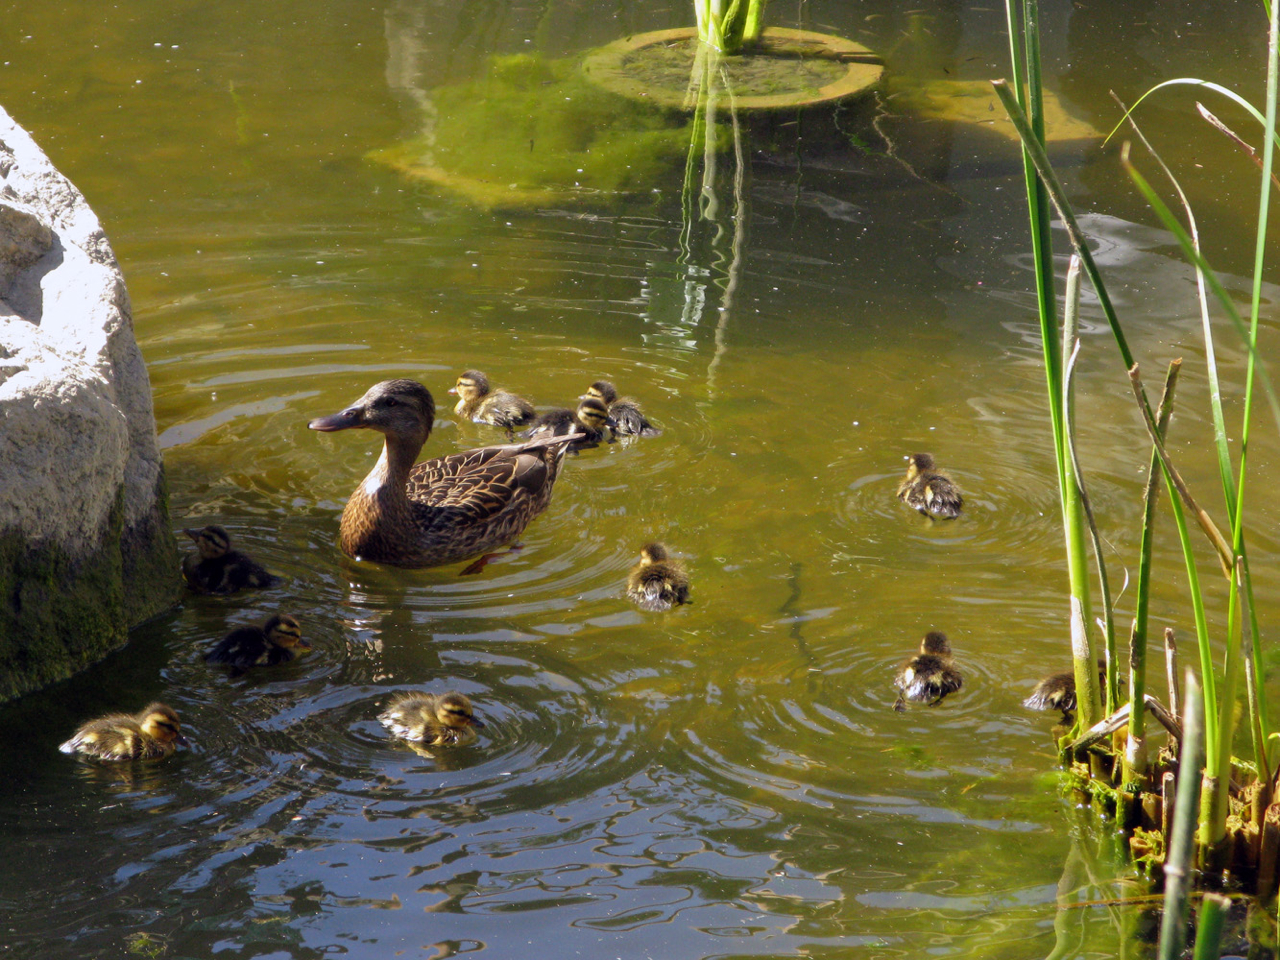 At a whopping eleven ducklings, this is the largest hatching we've ever had. Check out the flickr set for more photos.